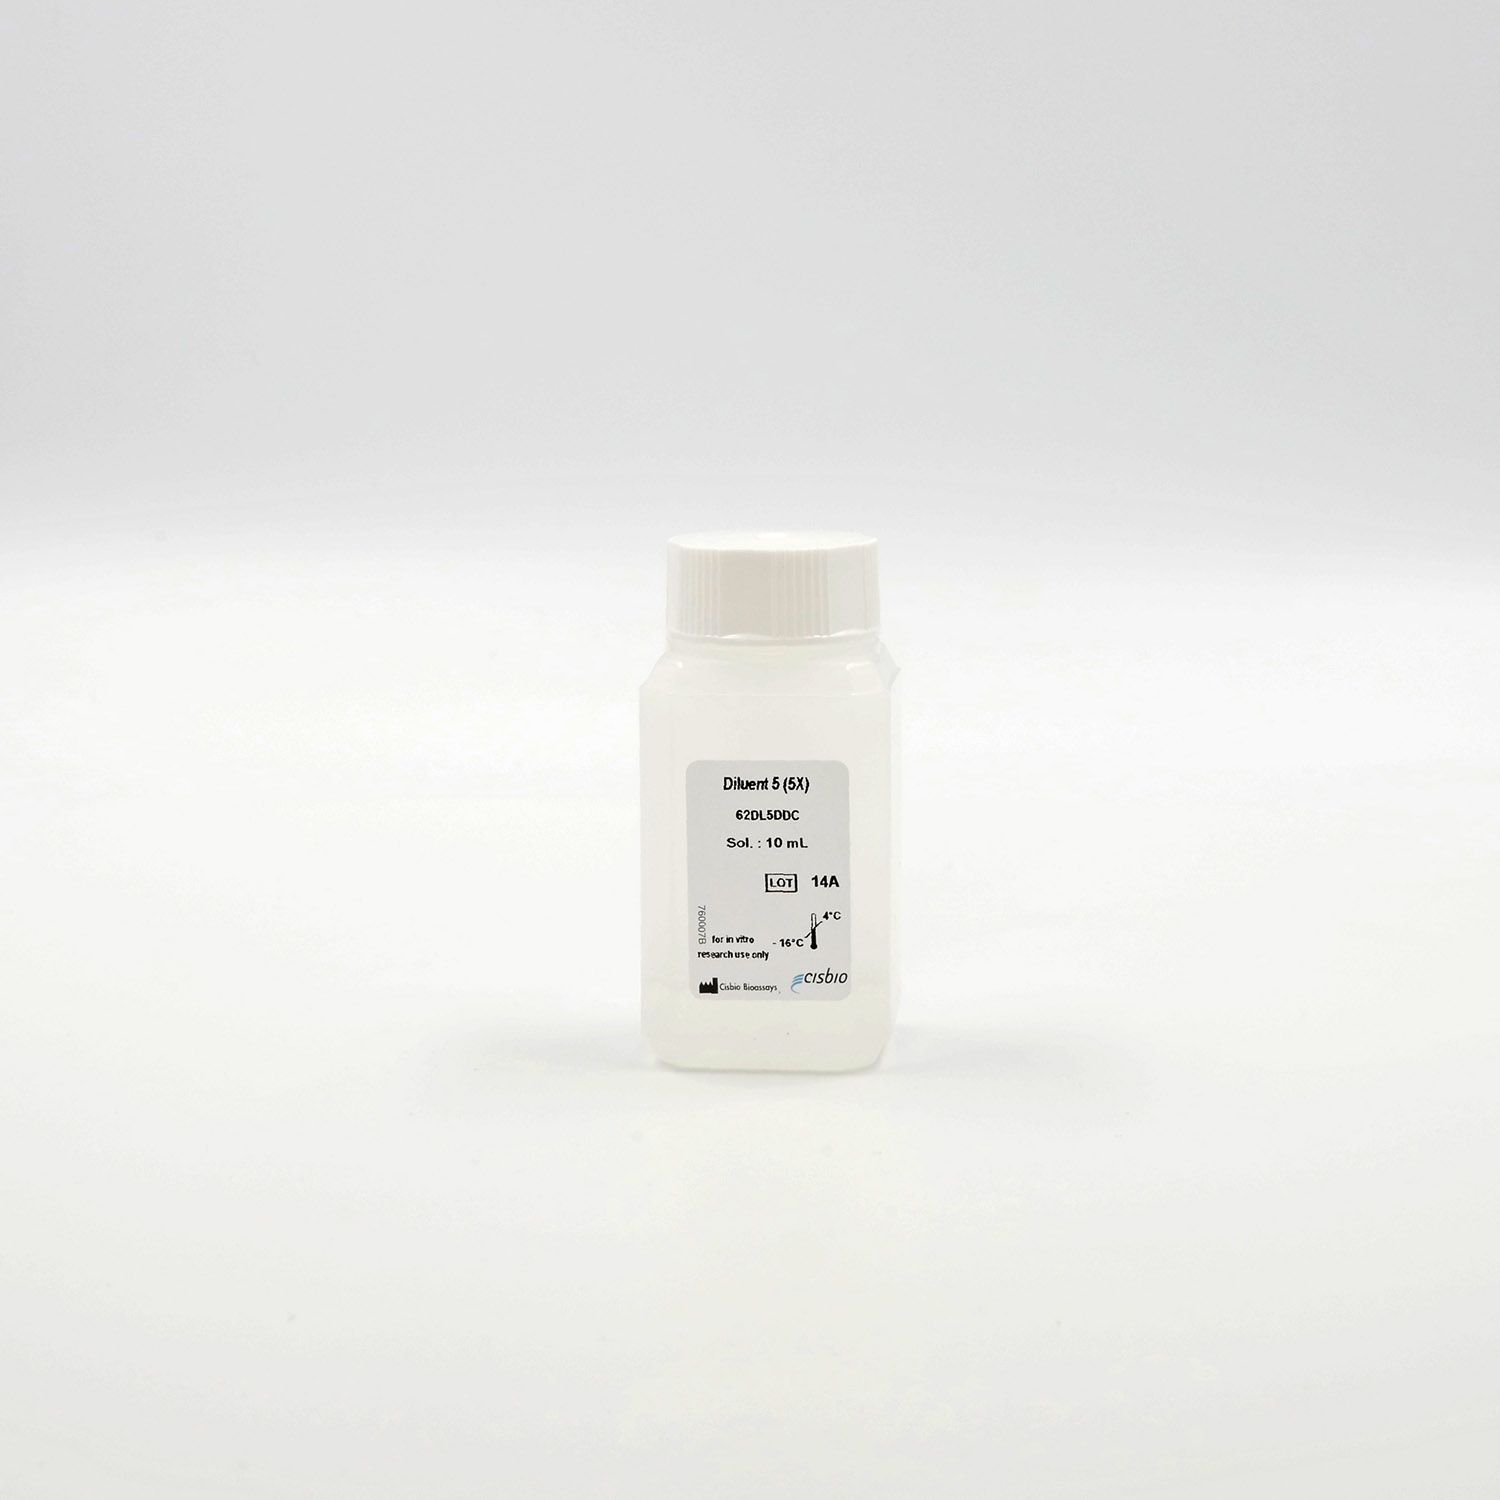 Photography of Diluent 5 (5X)